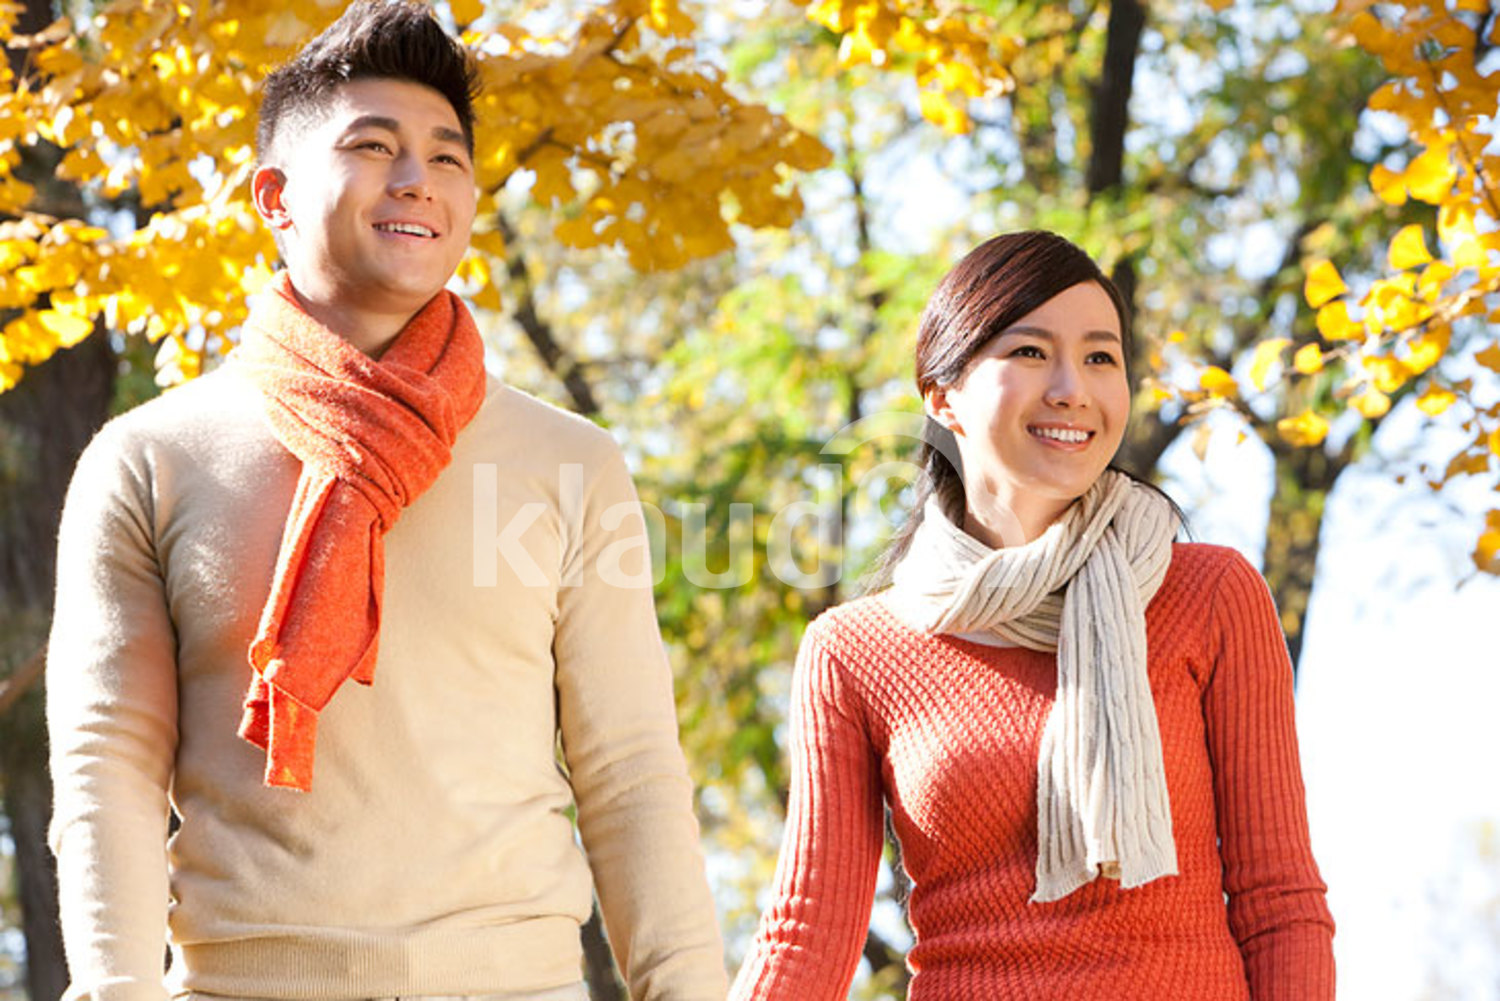 Young Chinese couple strolling through a park in autumn